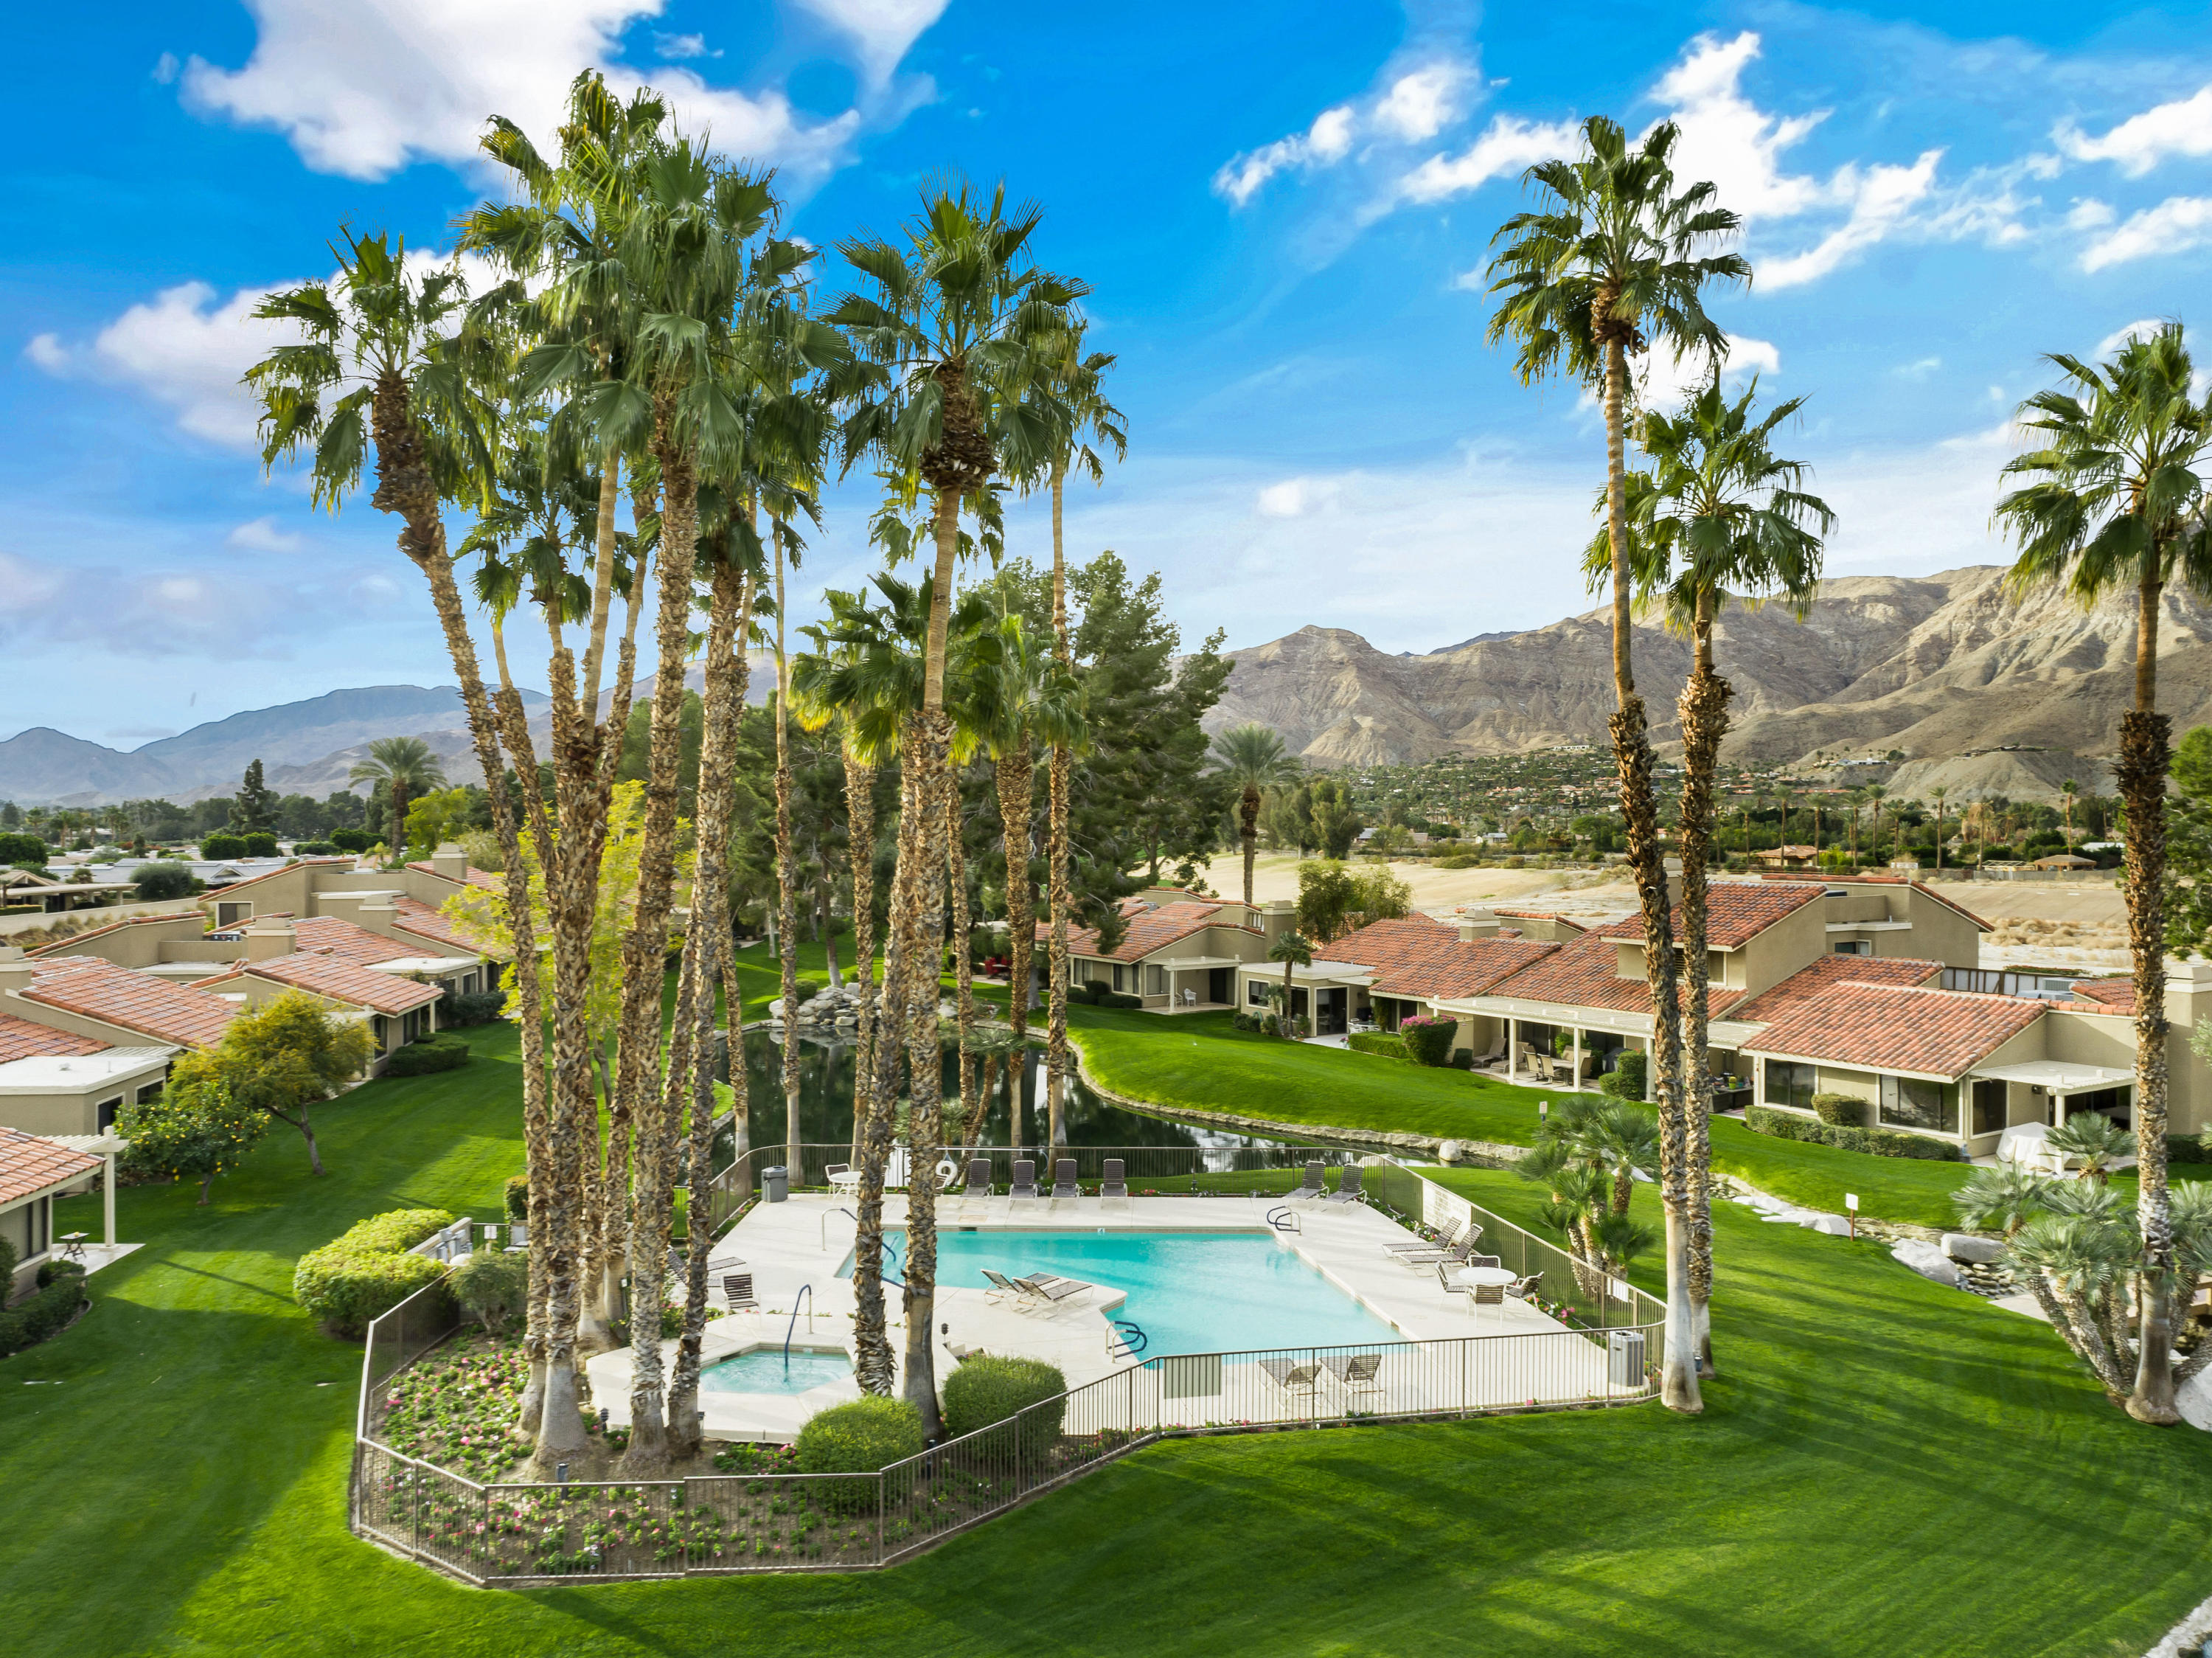 Immaculate Rancho Mirage Racquet Club condo with majestic mountain & spectacular river views. Enter this serene single story residence, through the wrought iron gate, which boasts 2079sqft. of updated interior living space, including 3 BD/3 BA, vaulted wood-beam ceilings, recessed lighting, upgraded plank flooring throughout, and inviting gas fireplace, with raised hearth. Formal dining room is adjacent to the entertainer's wet bar and Chef's kitchen featuring stainless steel appliances, custom hood, built-in ovens, slab granite countertops, breakfast bar and ample cabinetry. Dual guest accommodations afford comfort and privacy for all visiting friends/family, and both have en suite baths with large walk-in tiled showers and skylight. The Master Retreat is spacious with gorgeous rear views and attached luxury bath with large tiled (w/accent tiles) shower/tub. Enjoy relaxing times on your rear patio while taking in the sound of flowing river water, and peering out to the mountain vistas. The community features 5 pools, 9 tennis & pickle ball courts,1 Racquetball court, putting green, a gym, lakes, waterfalls, free-flowing streams. Close to all shopping and medical facilities.